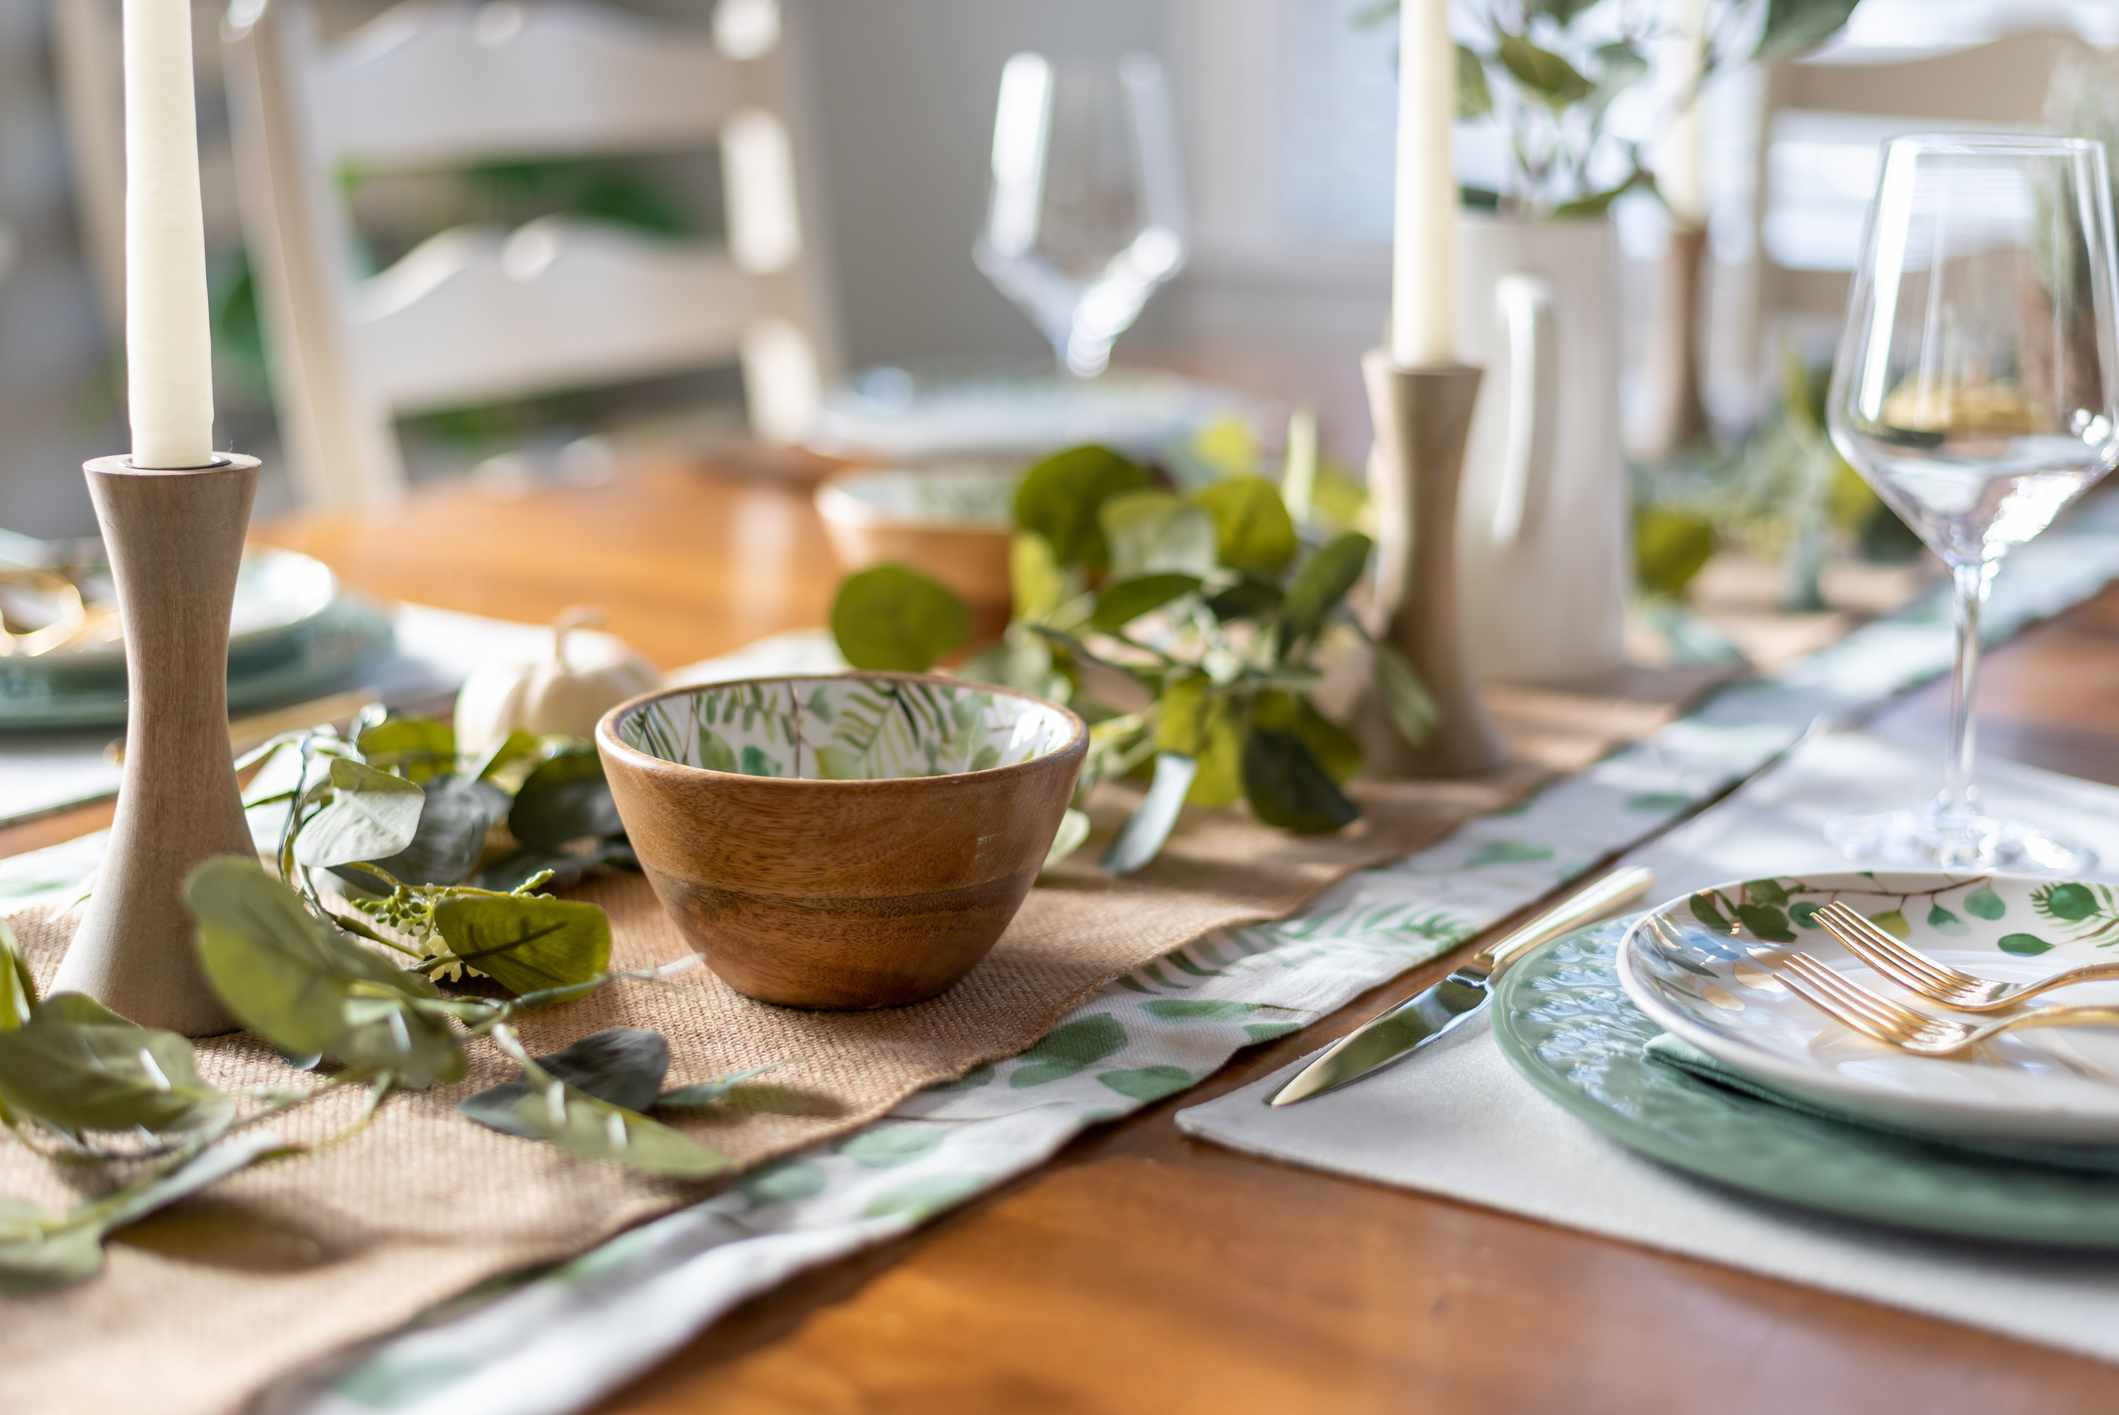 A table set for a dinner party